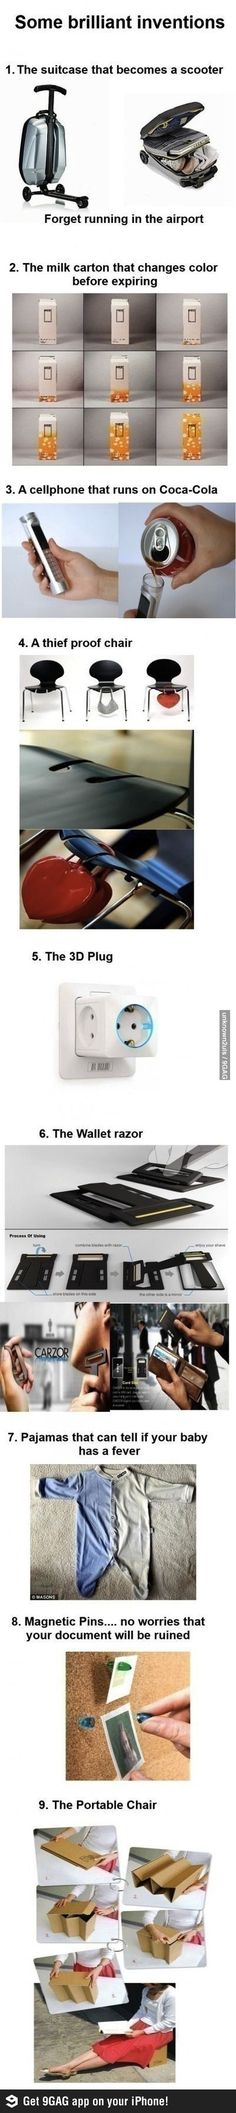 awesome new inventions